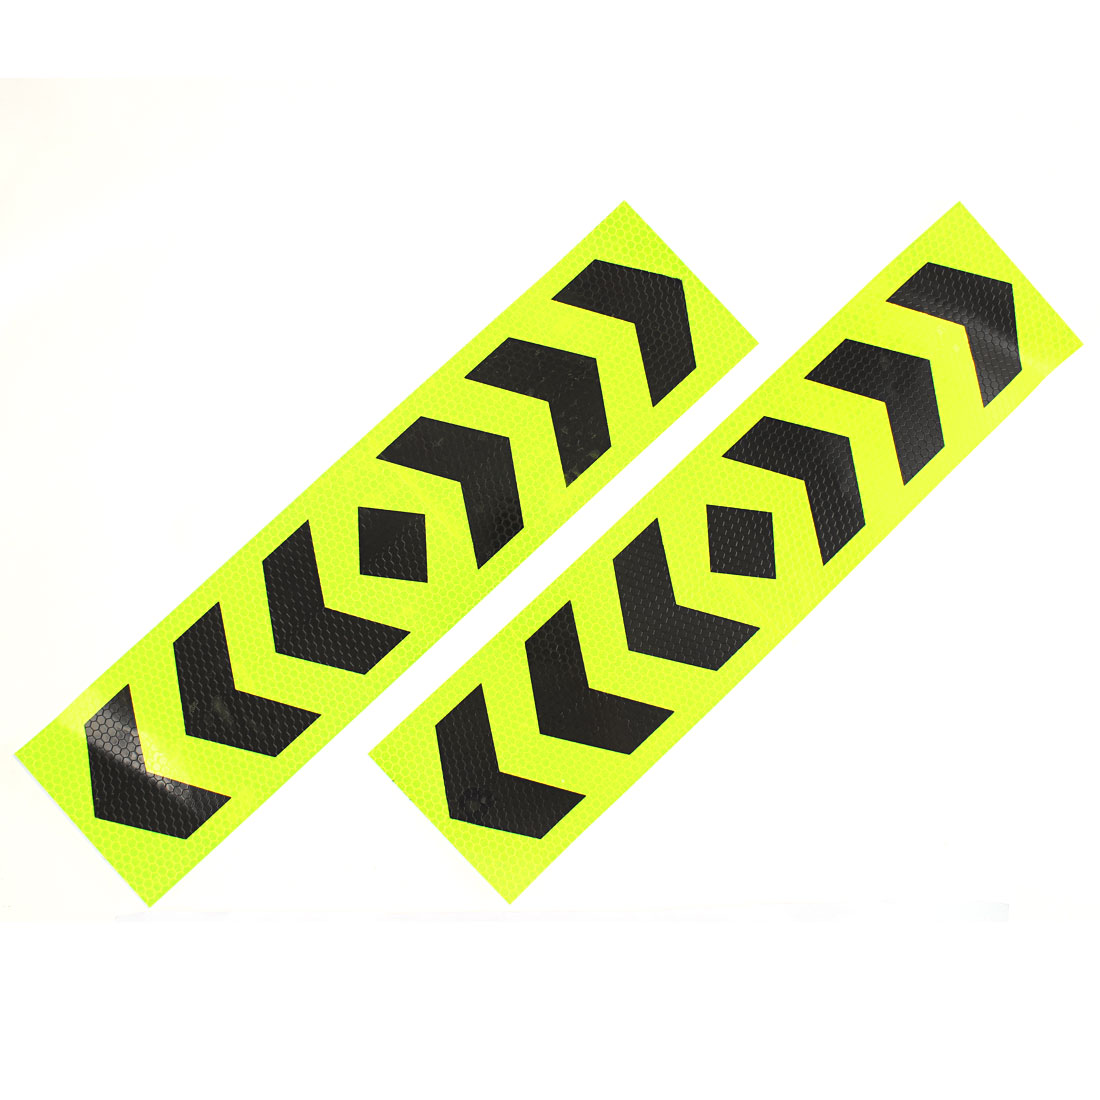 2 Pcs Self Adhesive Type Car Reflective Warning Sign Marking Sticker Tape Yellow Black